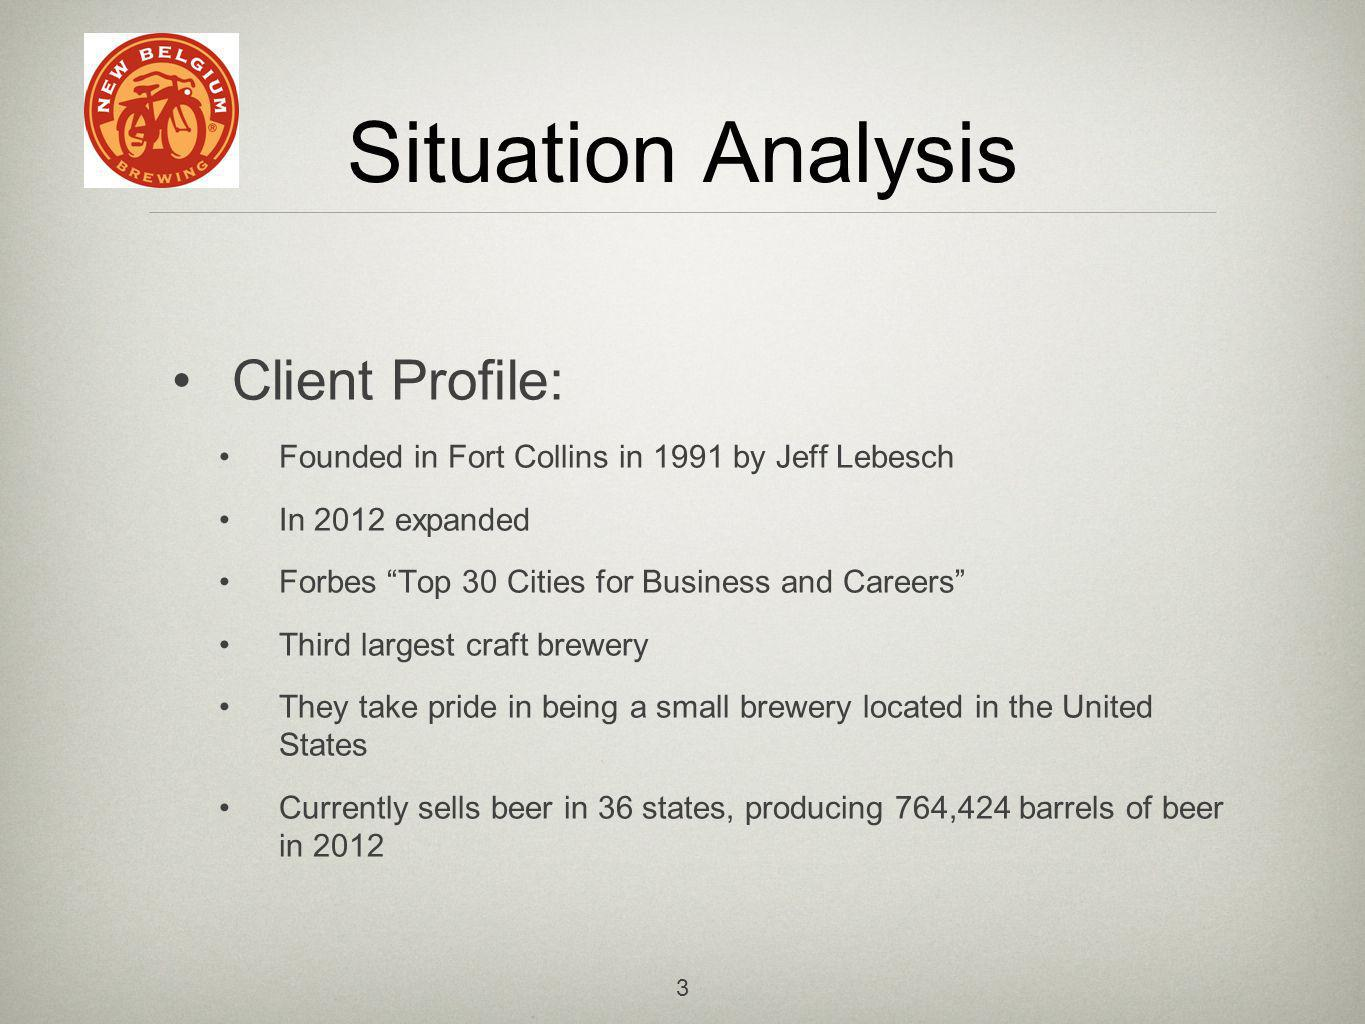 3 Situation Analysis Client Profile: Founded in Fort Collins in 1991 by Jeff Lebesch In 2012 expanded Forbes Top 30 Cities for Business and Careers Third largest craft brewery They take pride in being a small brewery located in the United States Currently sells beer in 36 states, producing 764,424 barrels of beer in 2012